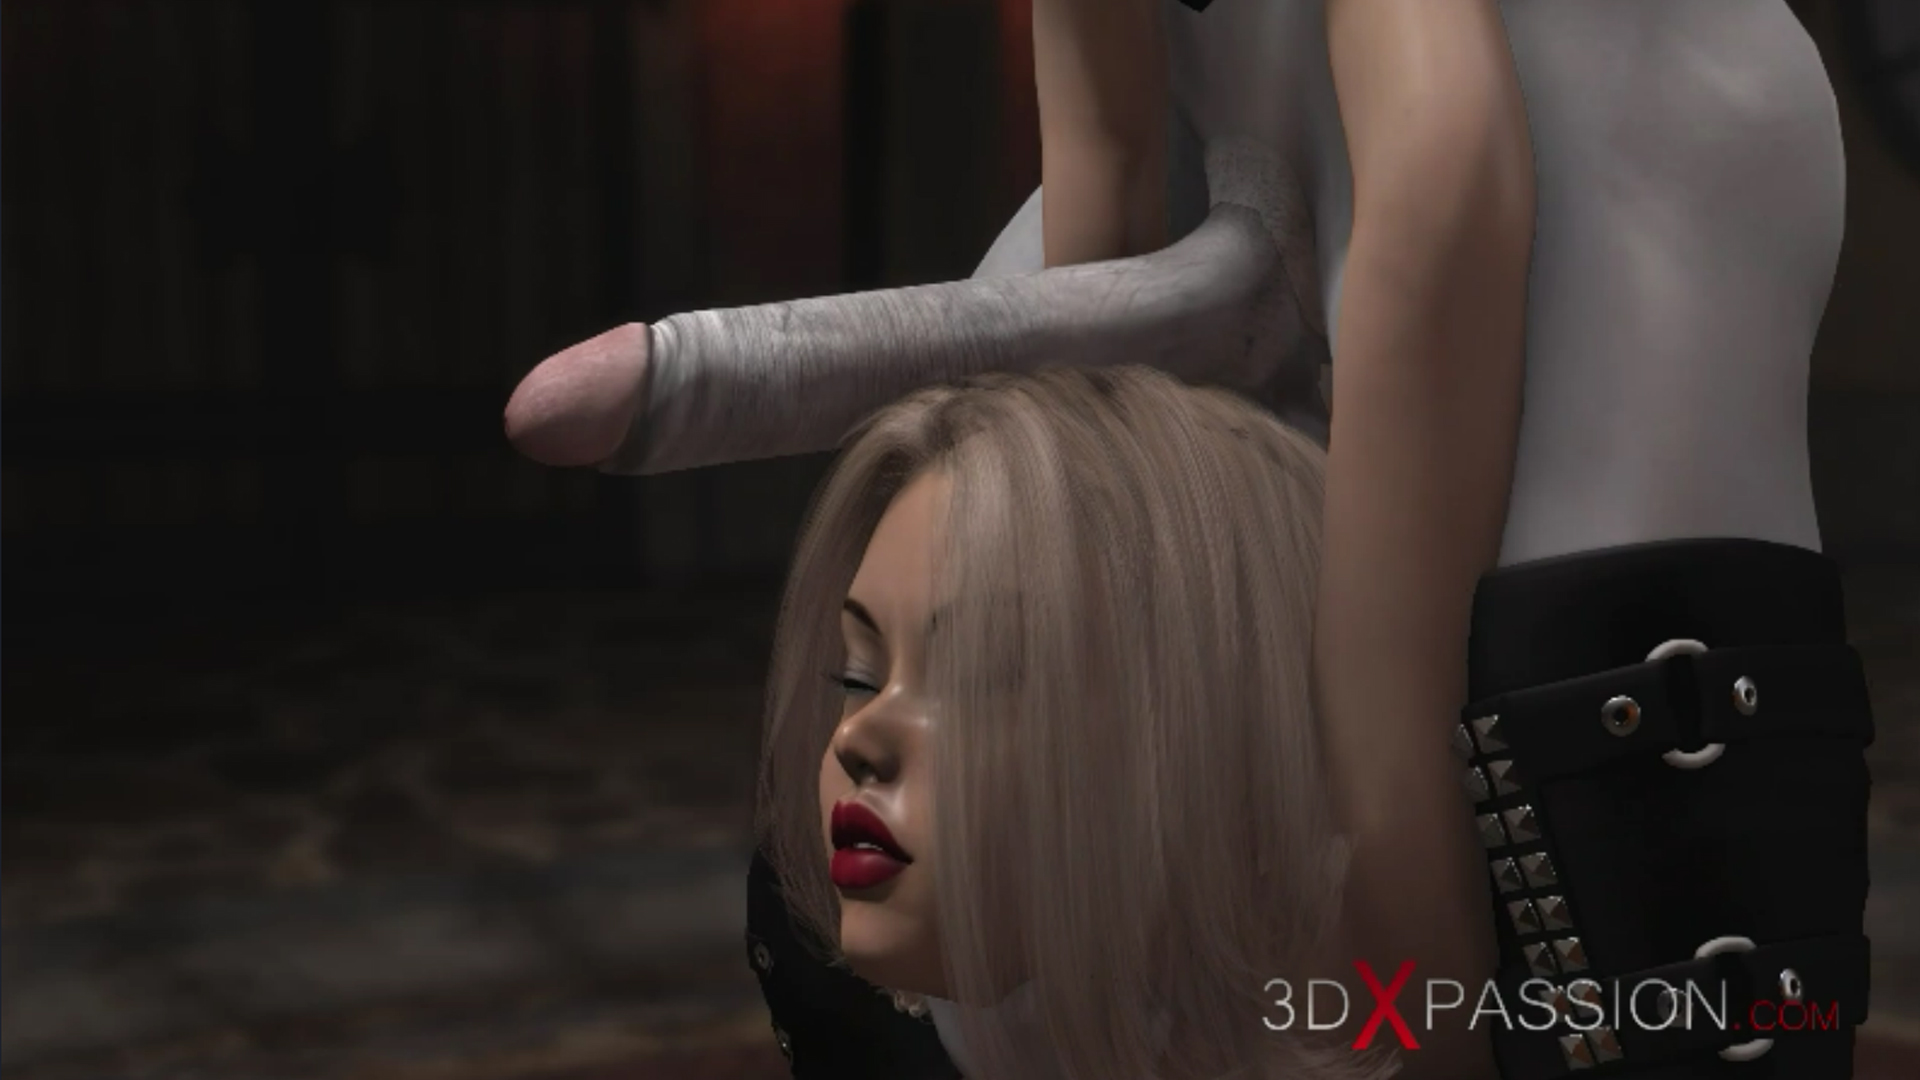 Hot girl slave gets fucked hard by satanic witches